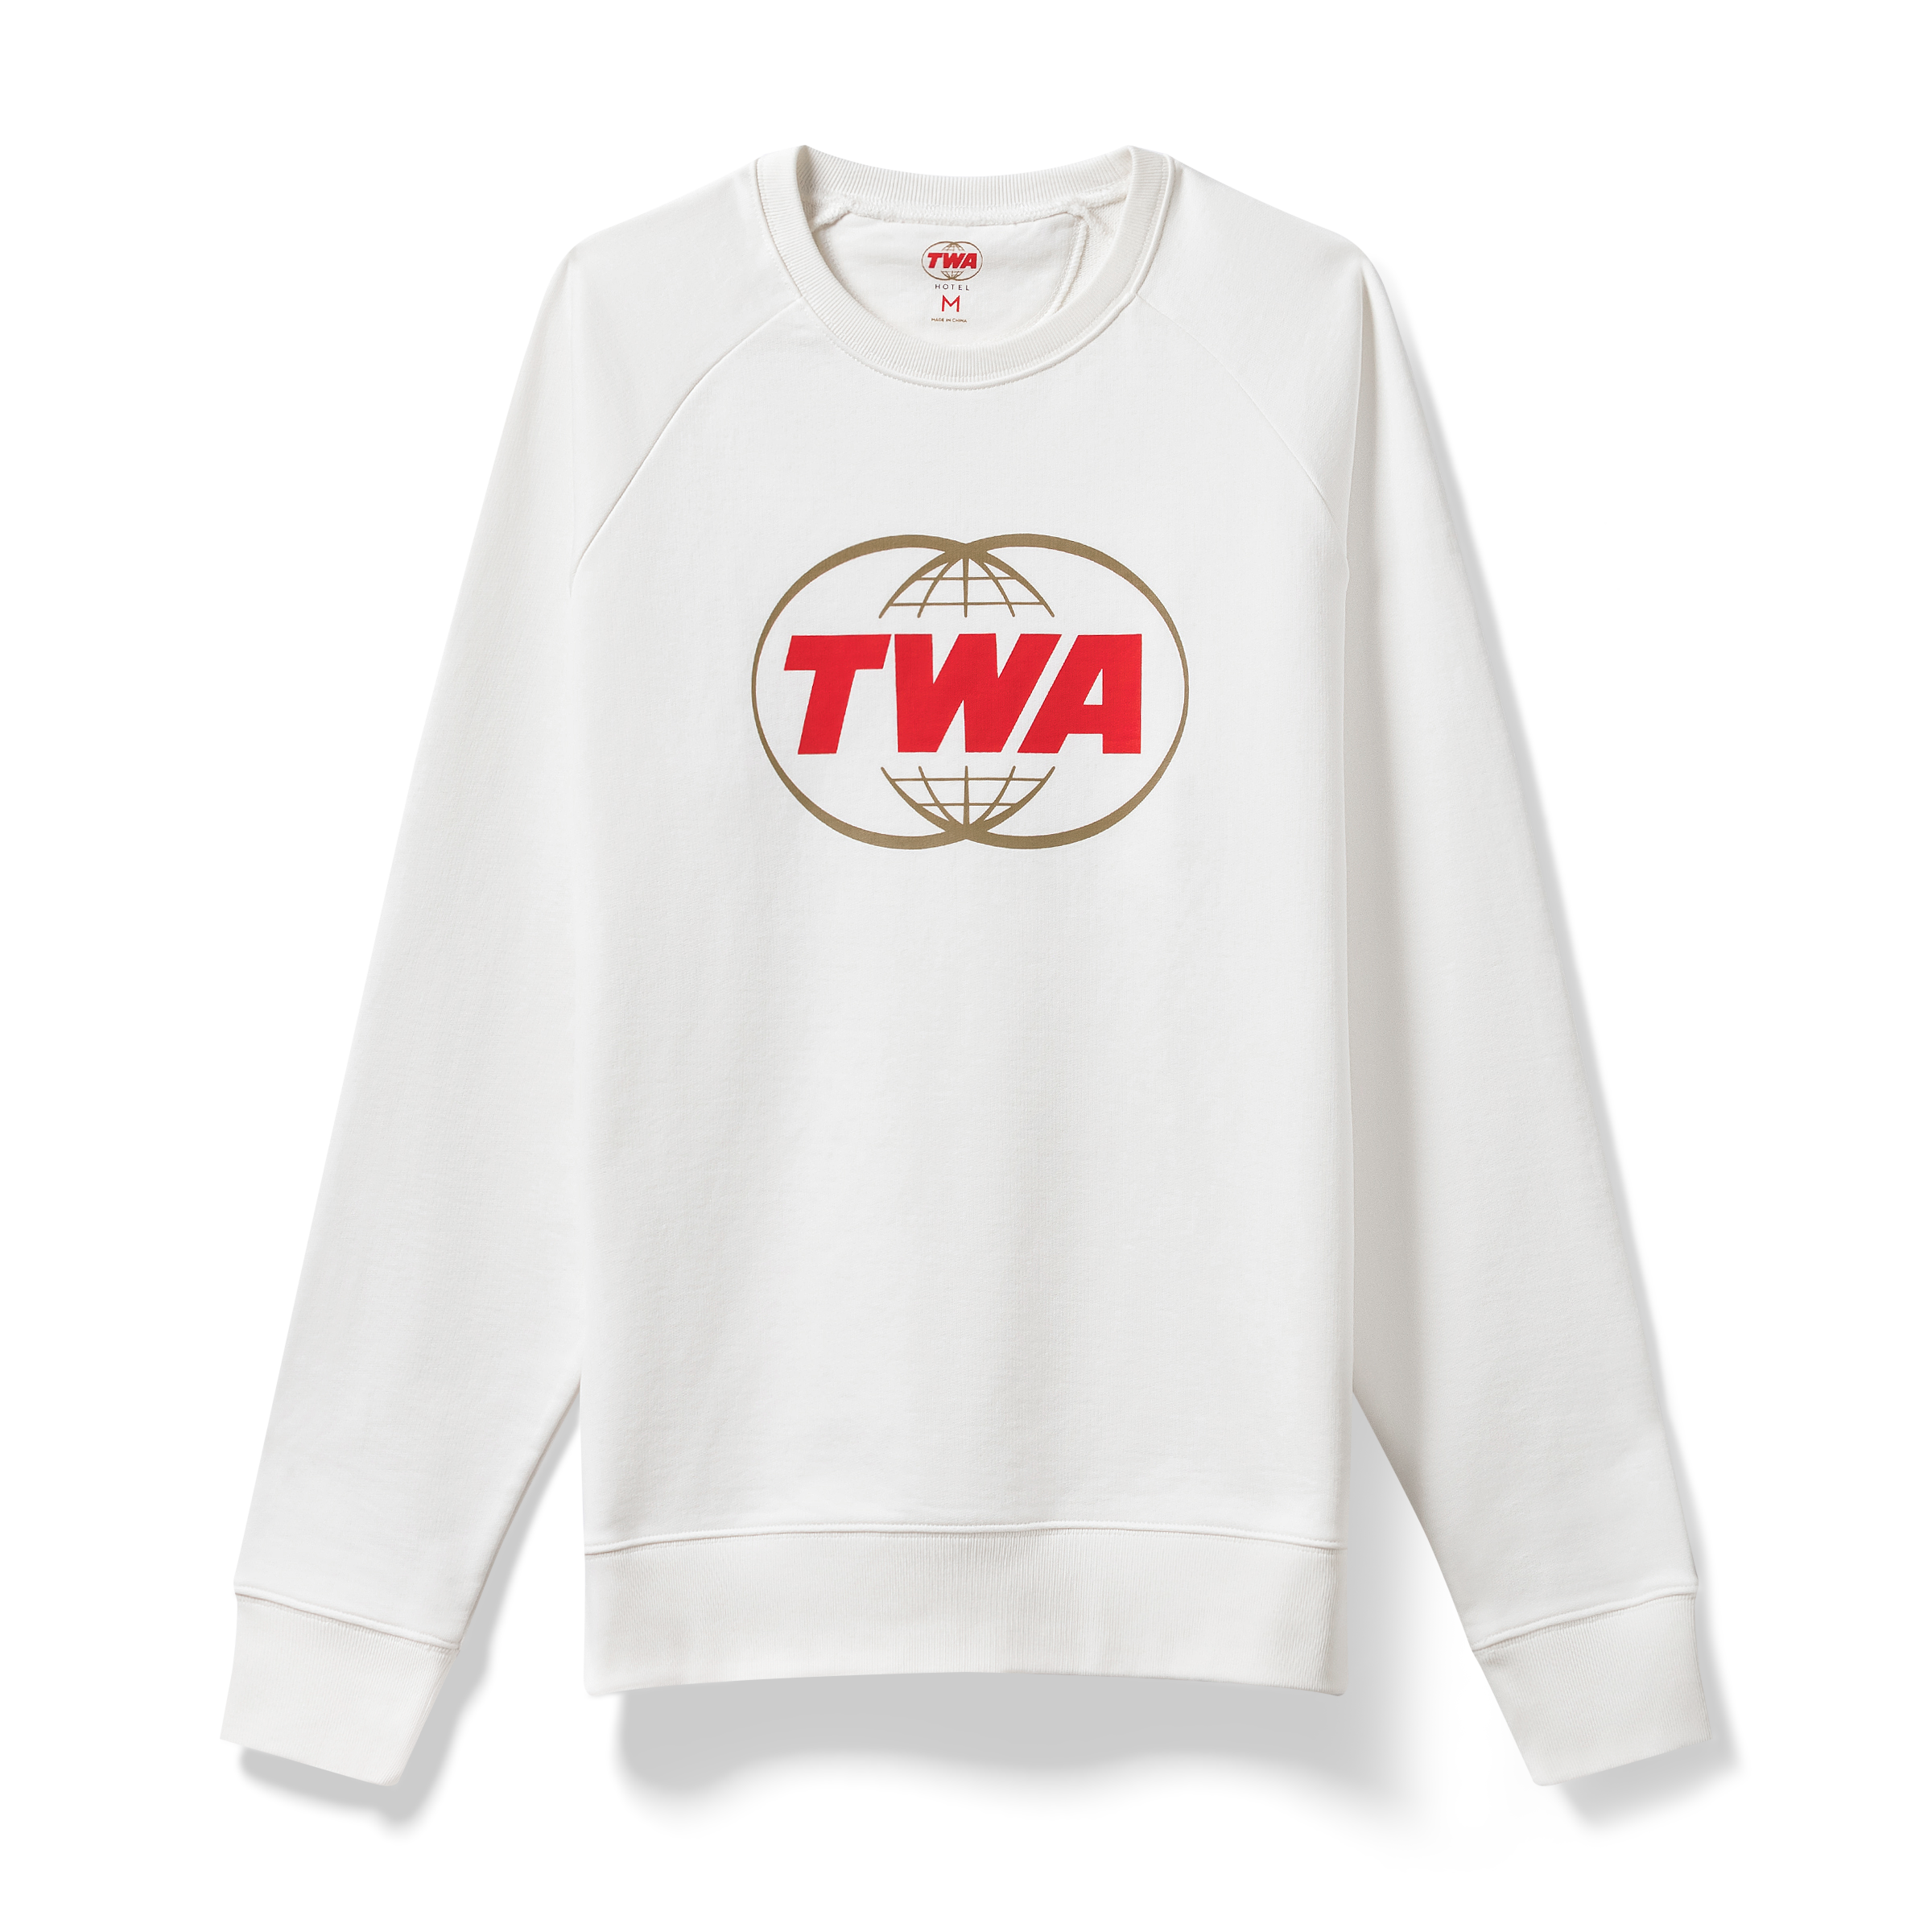 white sweater product photography